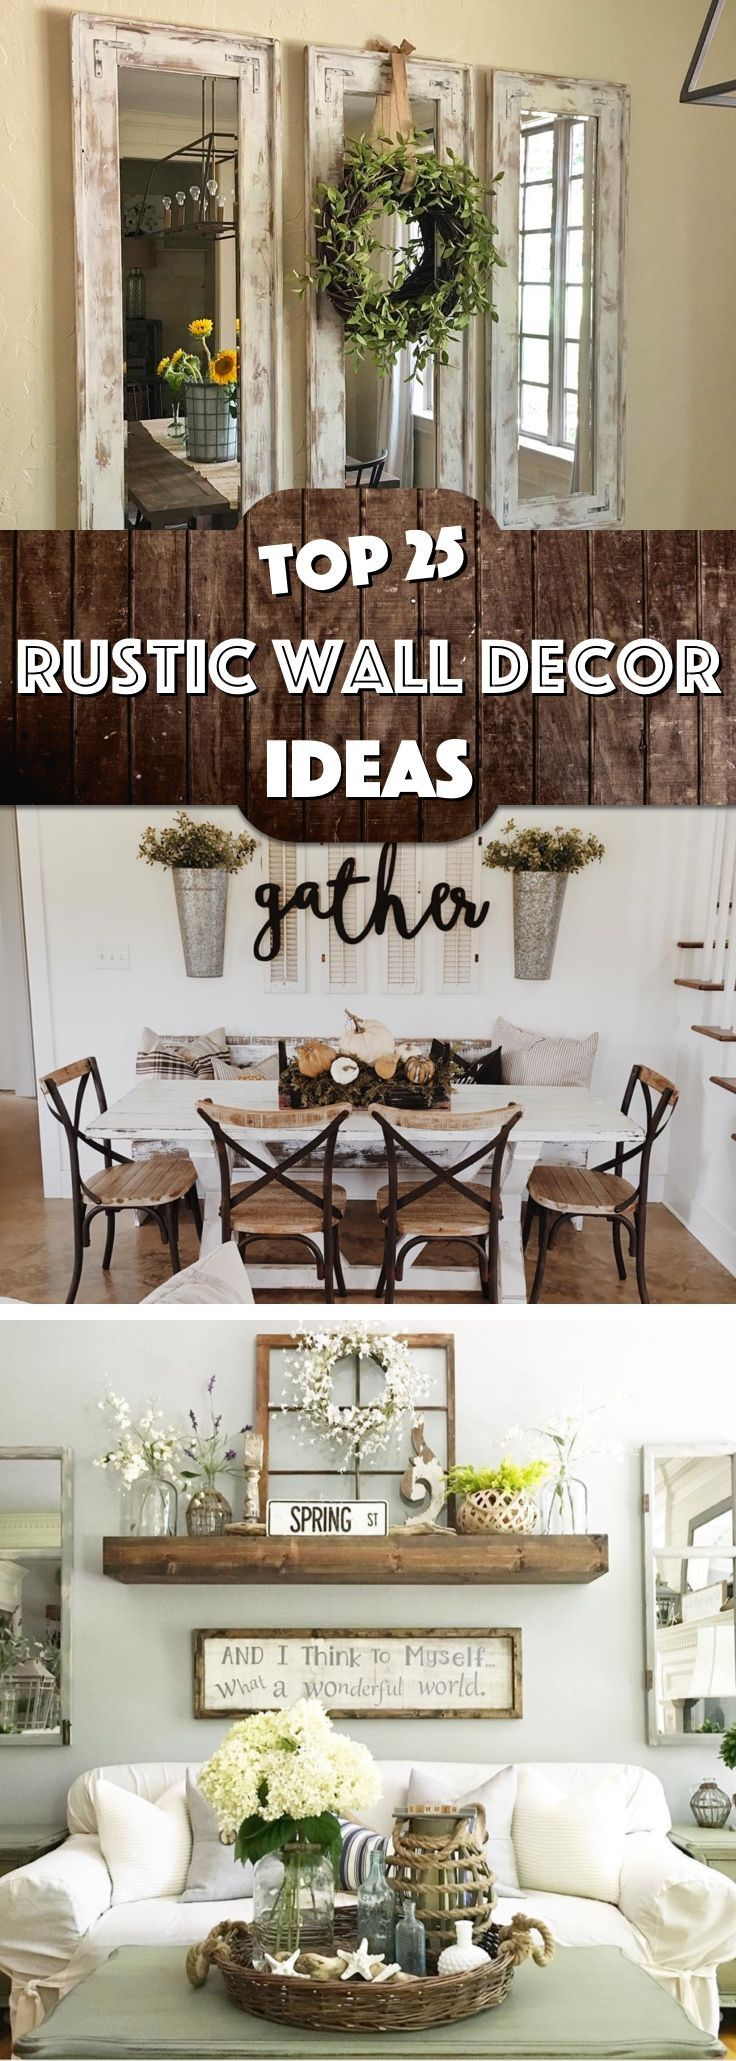 Best 25 Country wall decor ideas on Pinterest Rustic wall decor